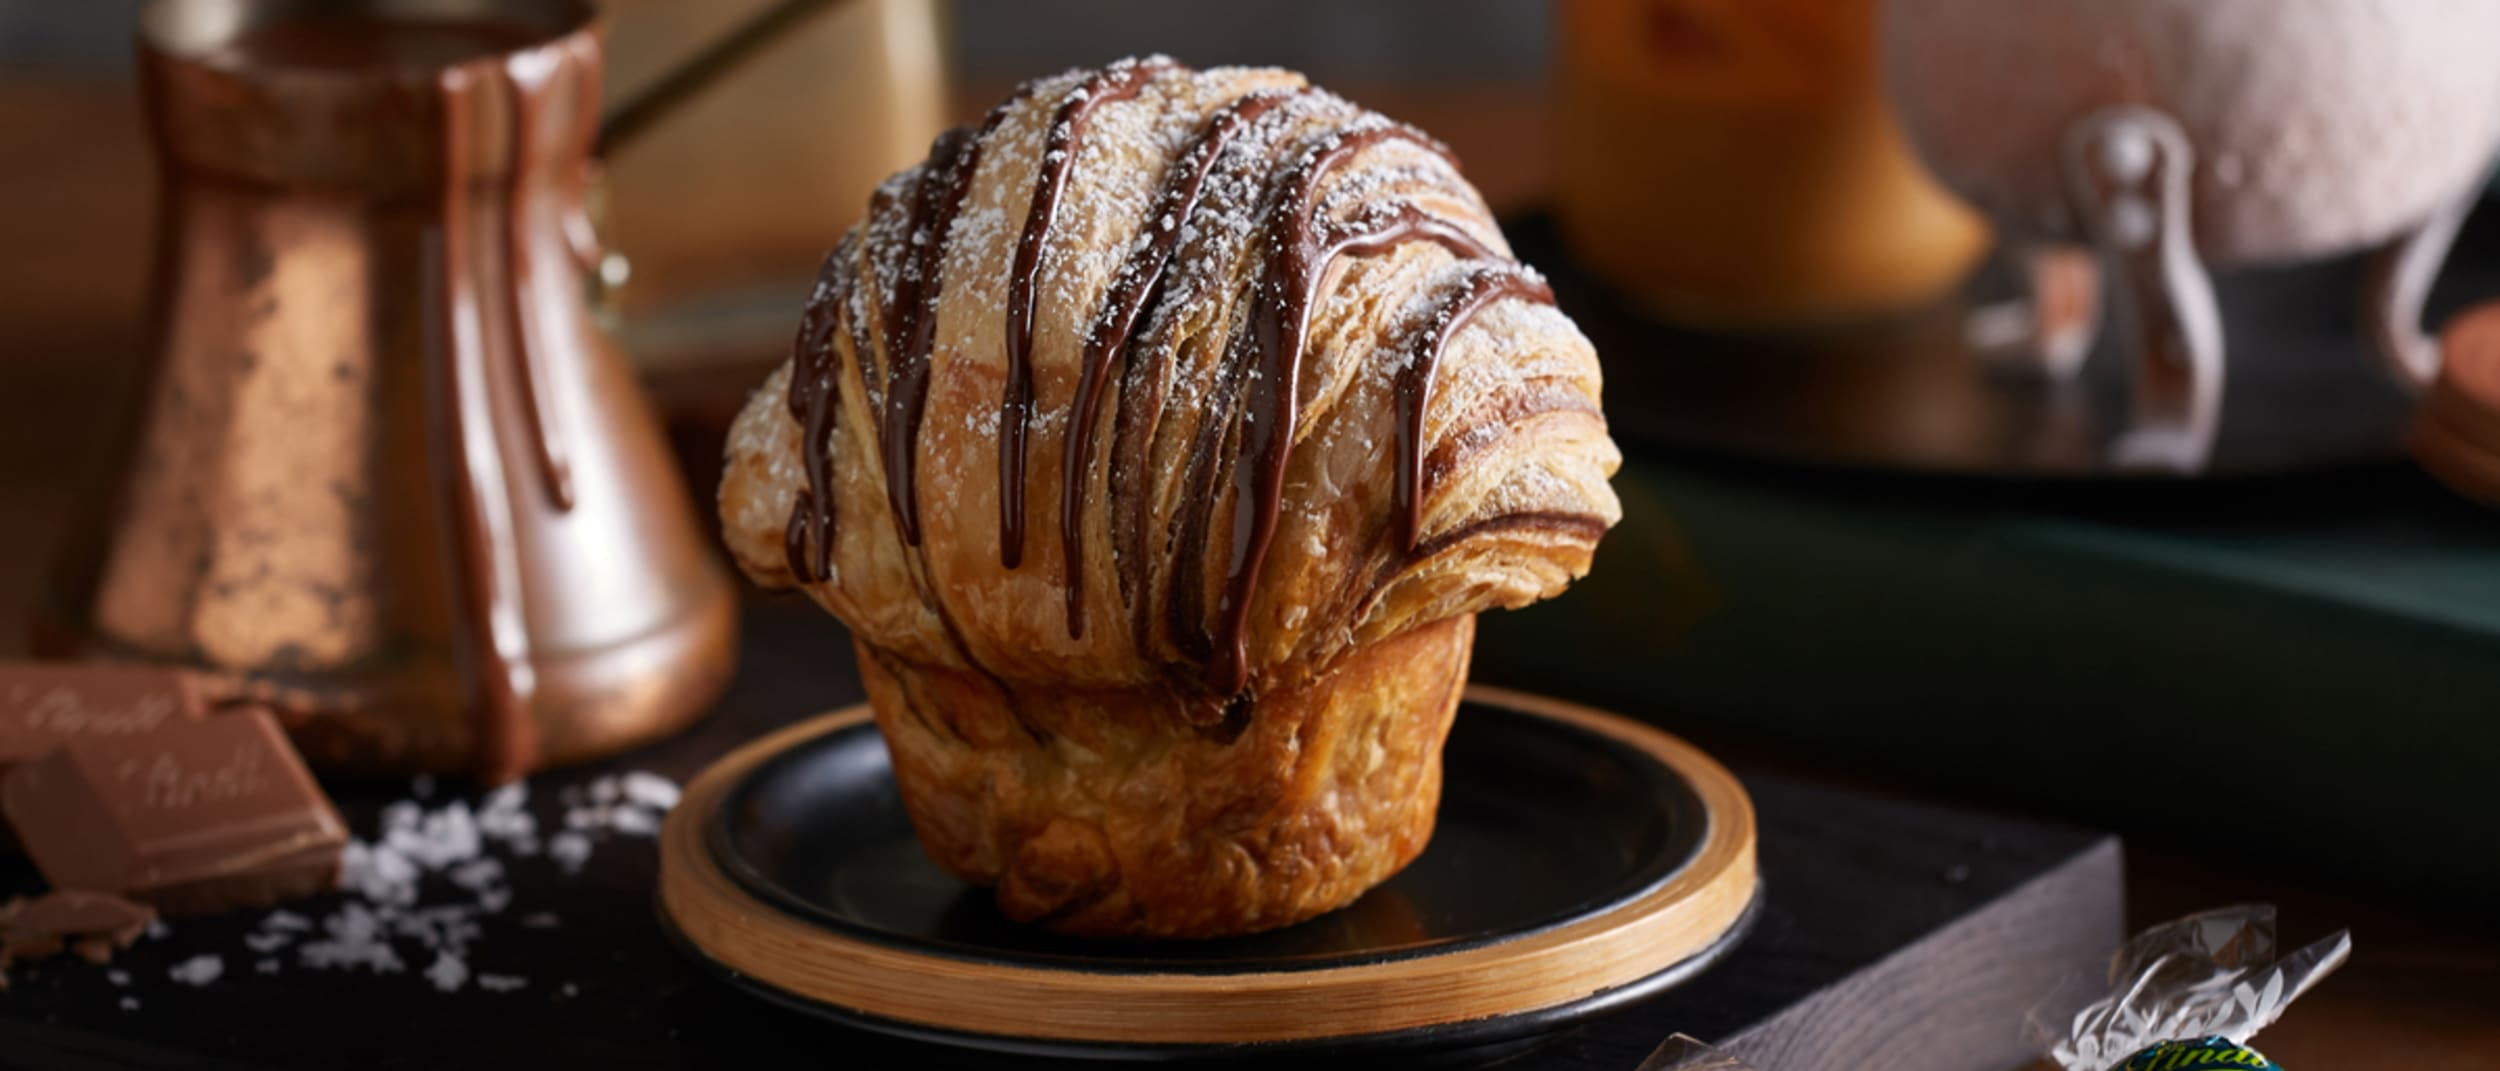 Muffin Break: introducing the duffin, made with Lindt